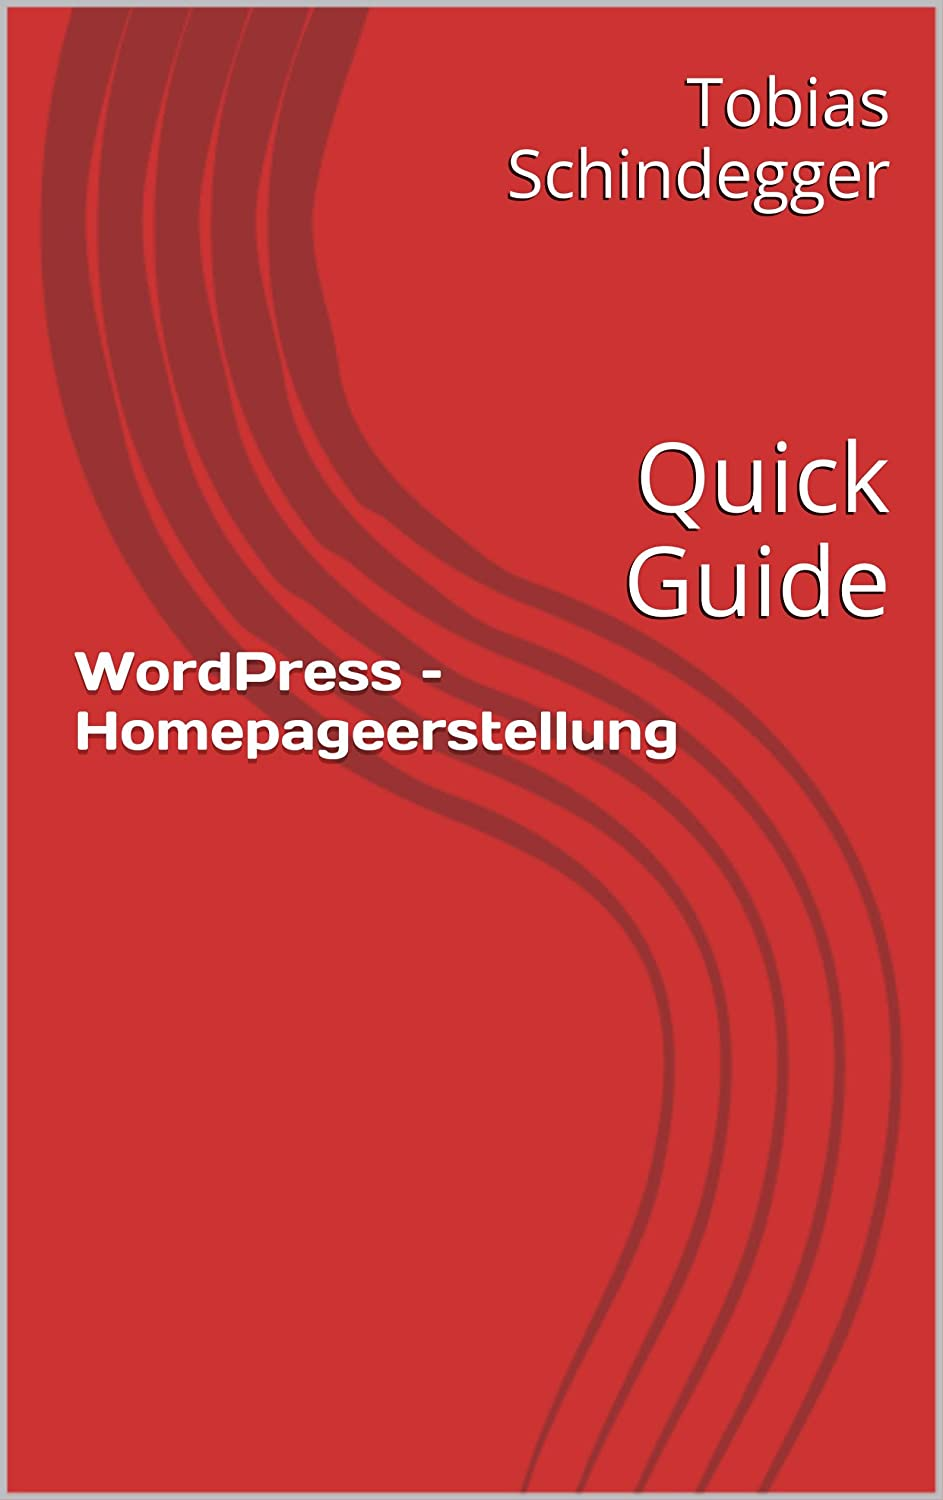 WordPress - Homepageerstellung: Quick Guide [Kindle Edition]